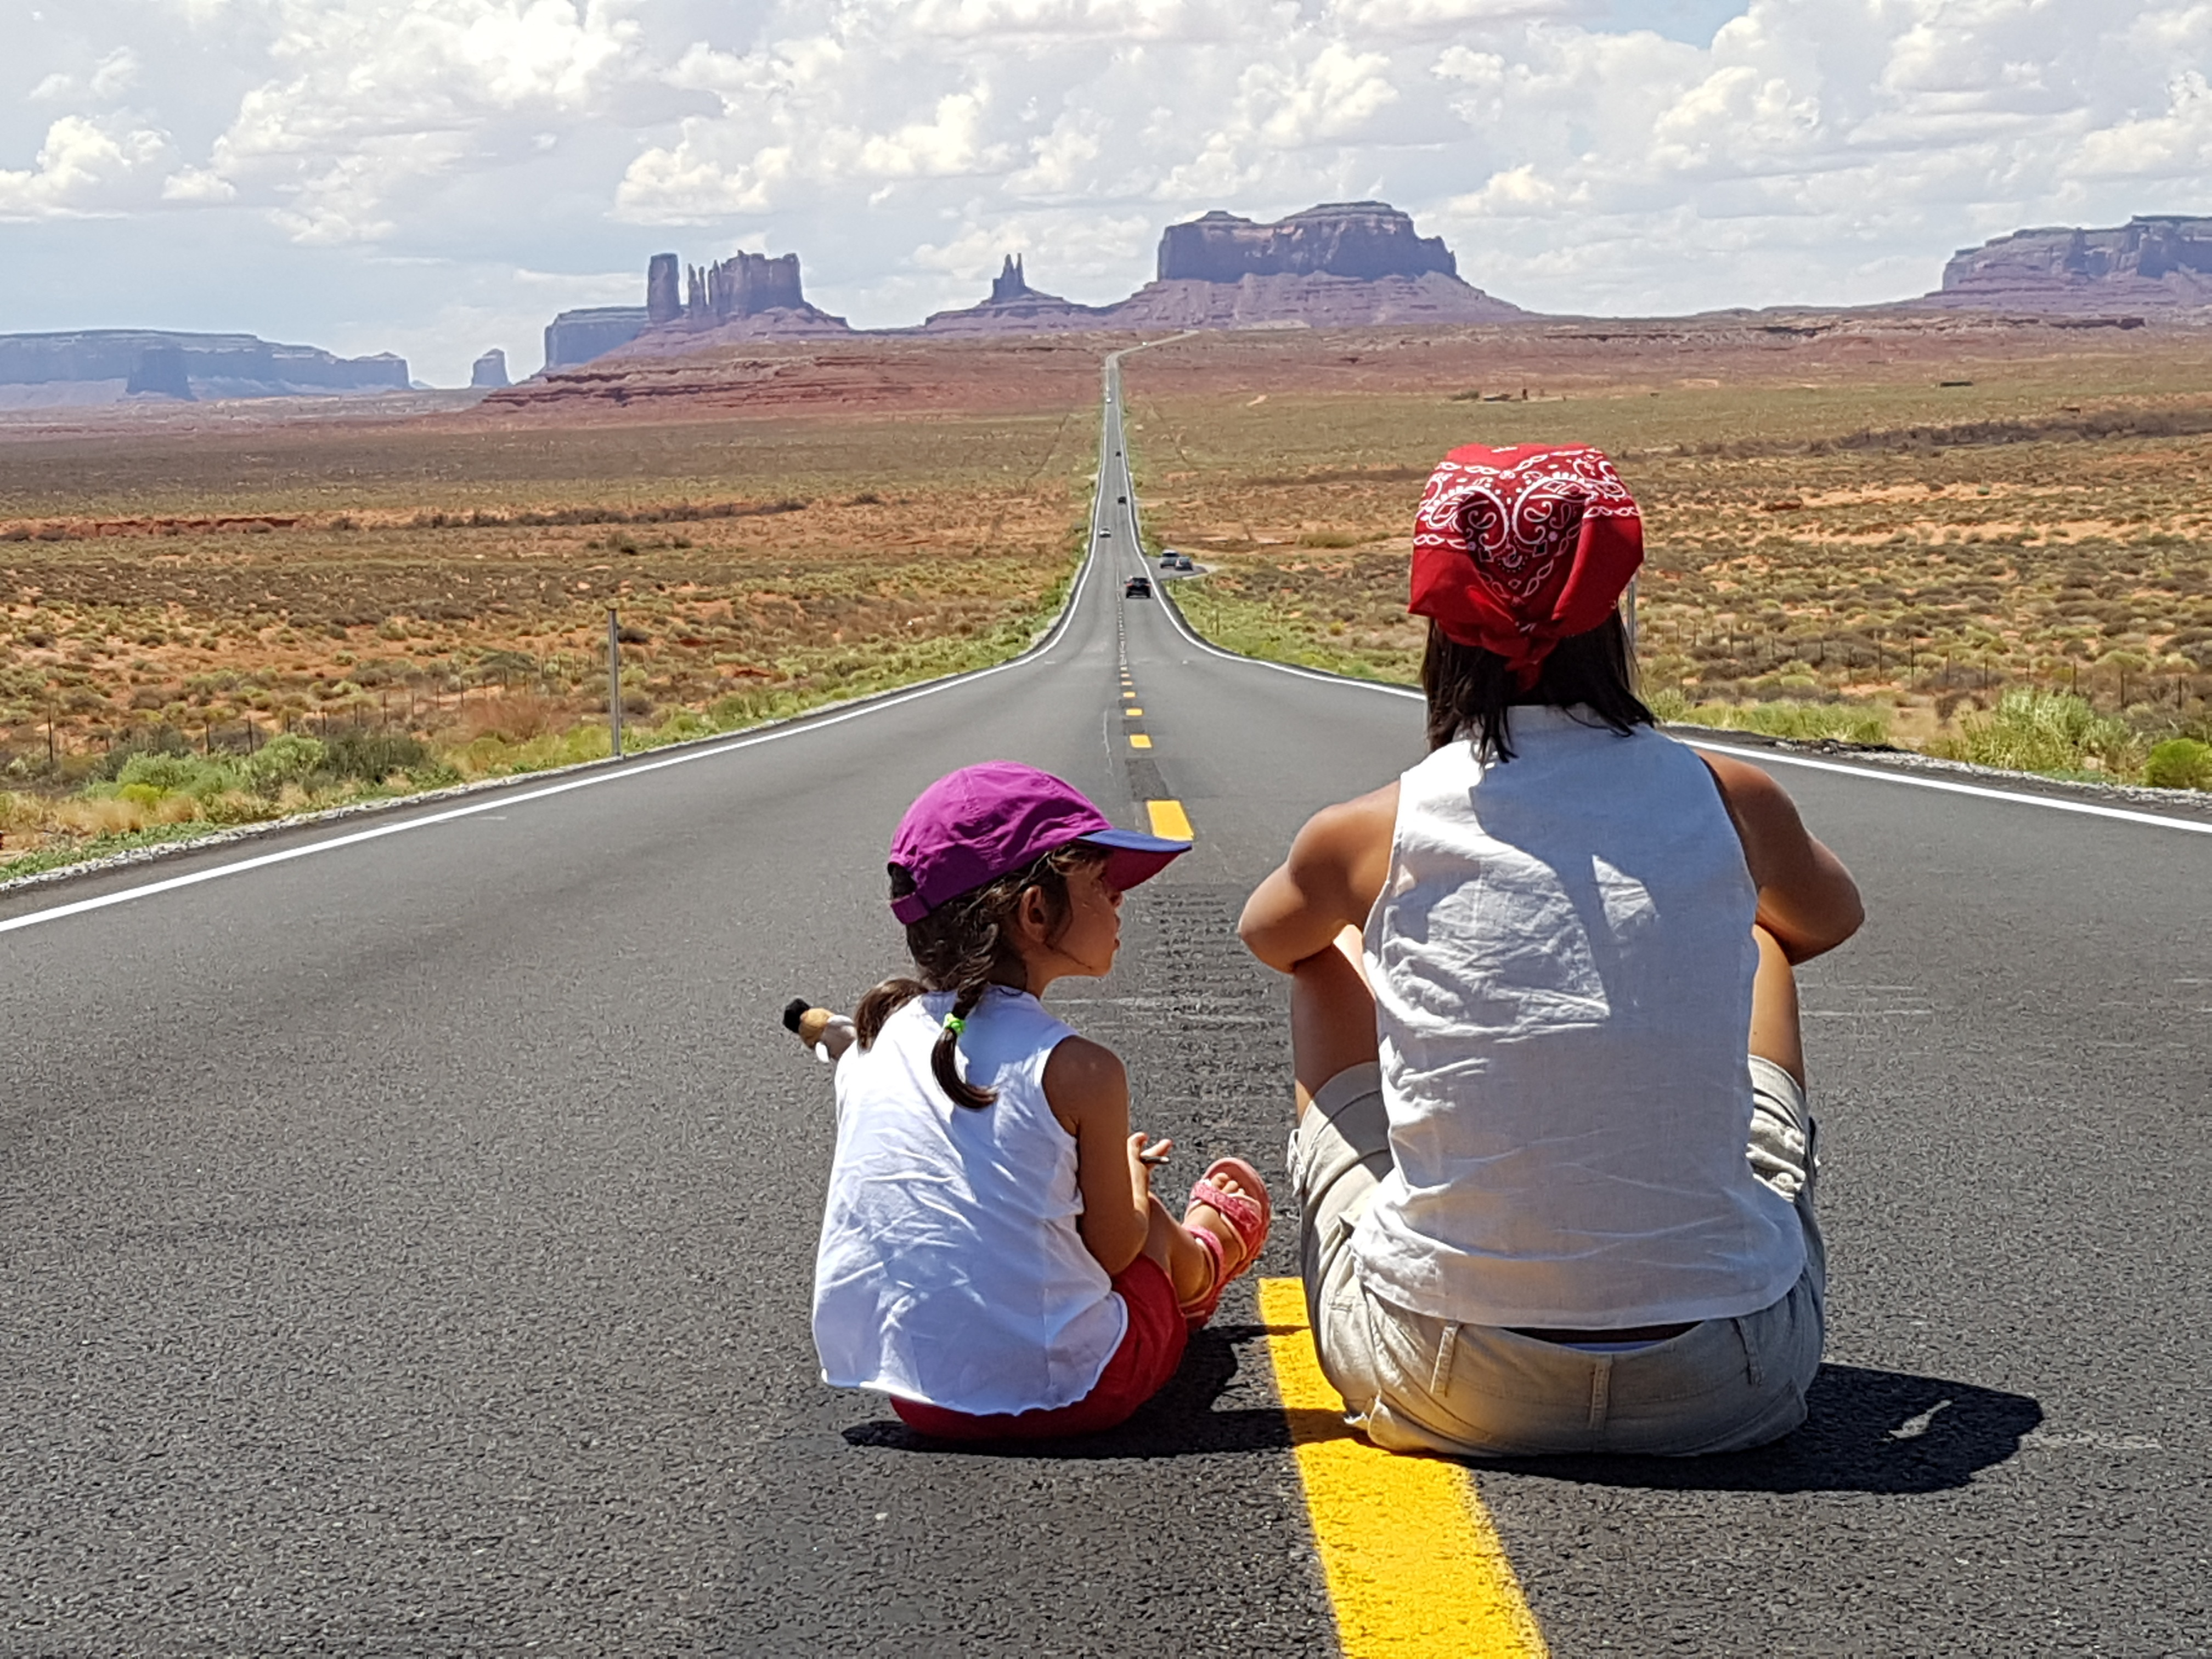 Monument Valley - On the road